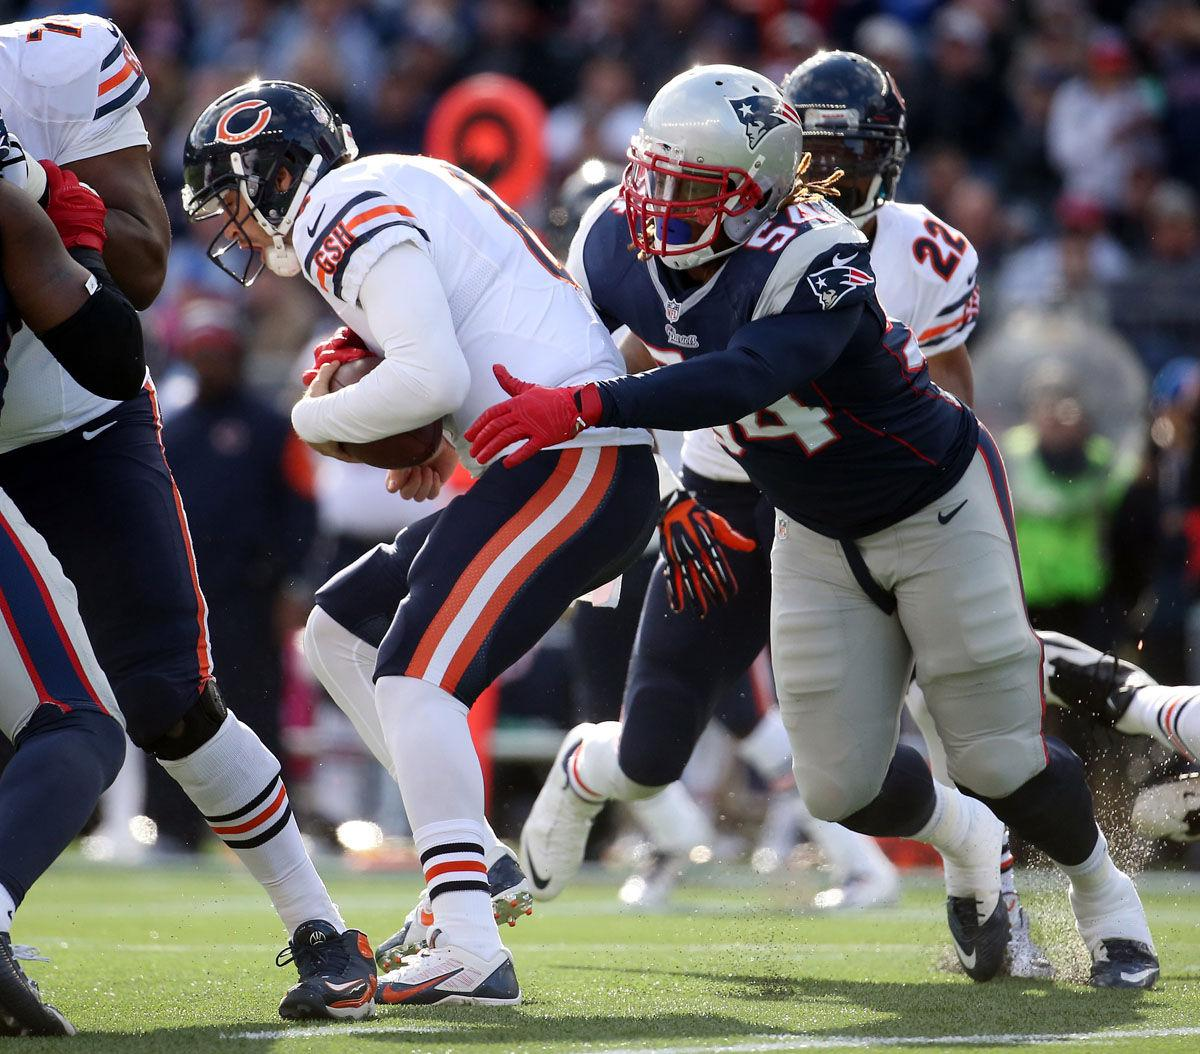 Chicago+Bears+quarterback+Jay+Cutler+is+sacked+by+New+England+Patriots+outside+linebacker+Dont%E2%80%99a+Hightower+in+the+second+quarter+Sunday.